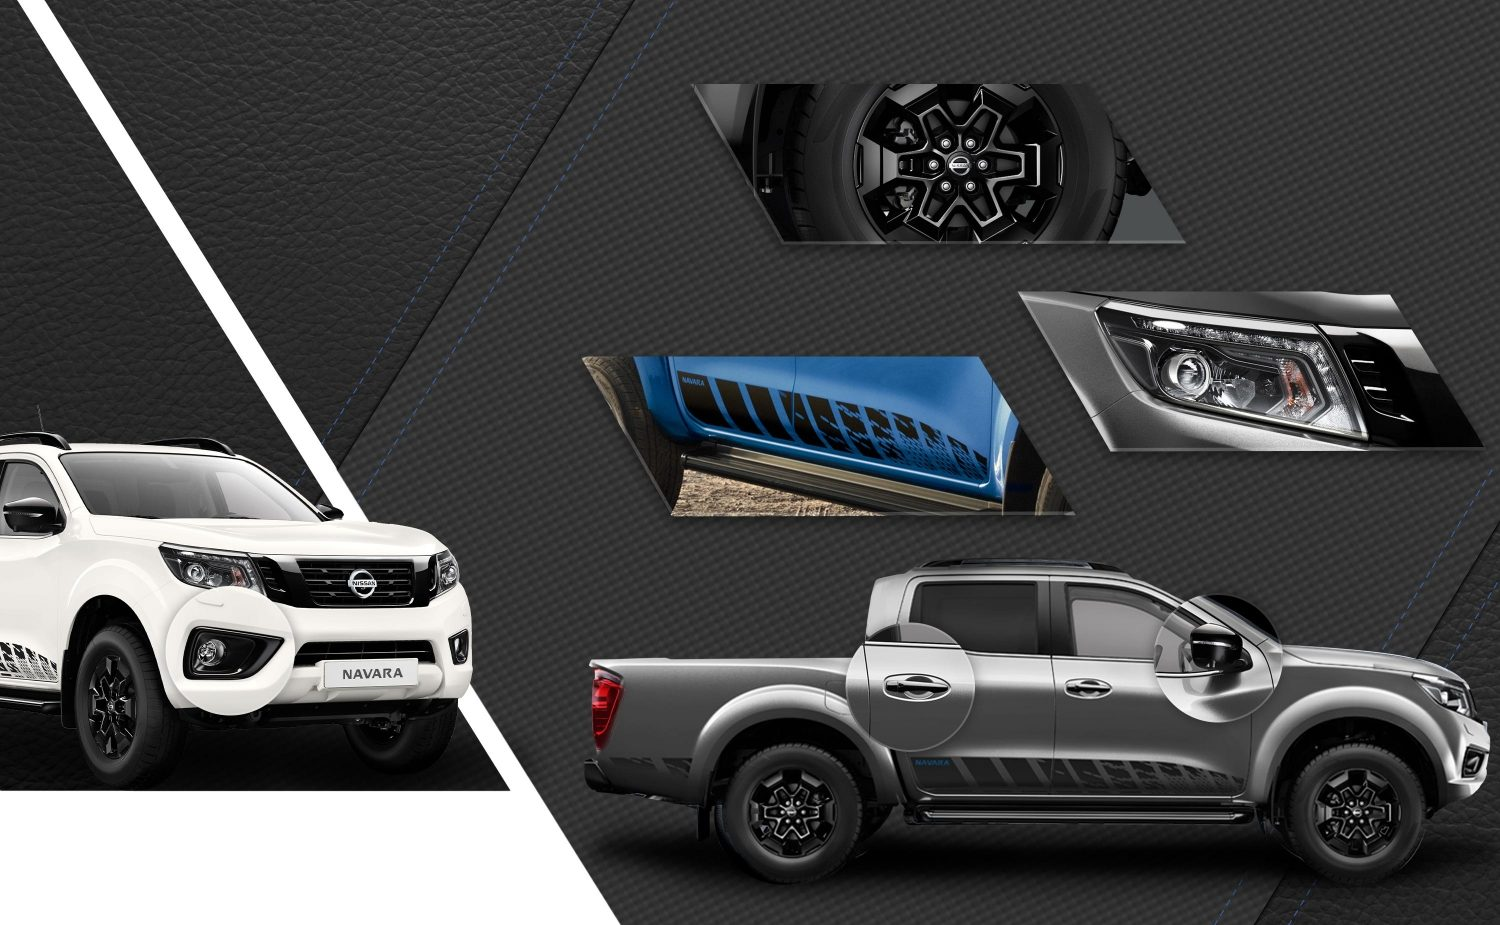 Nissan Navara N-Guard comp with all the exterior styling details